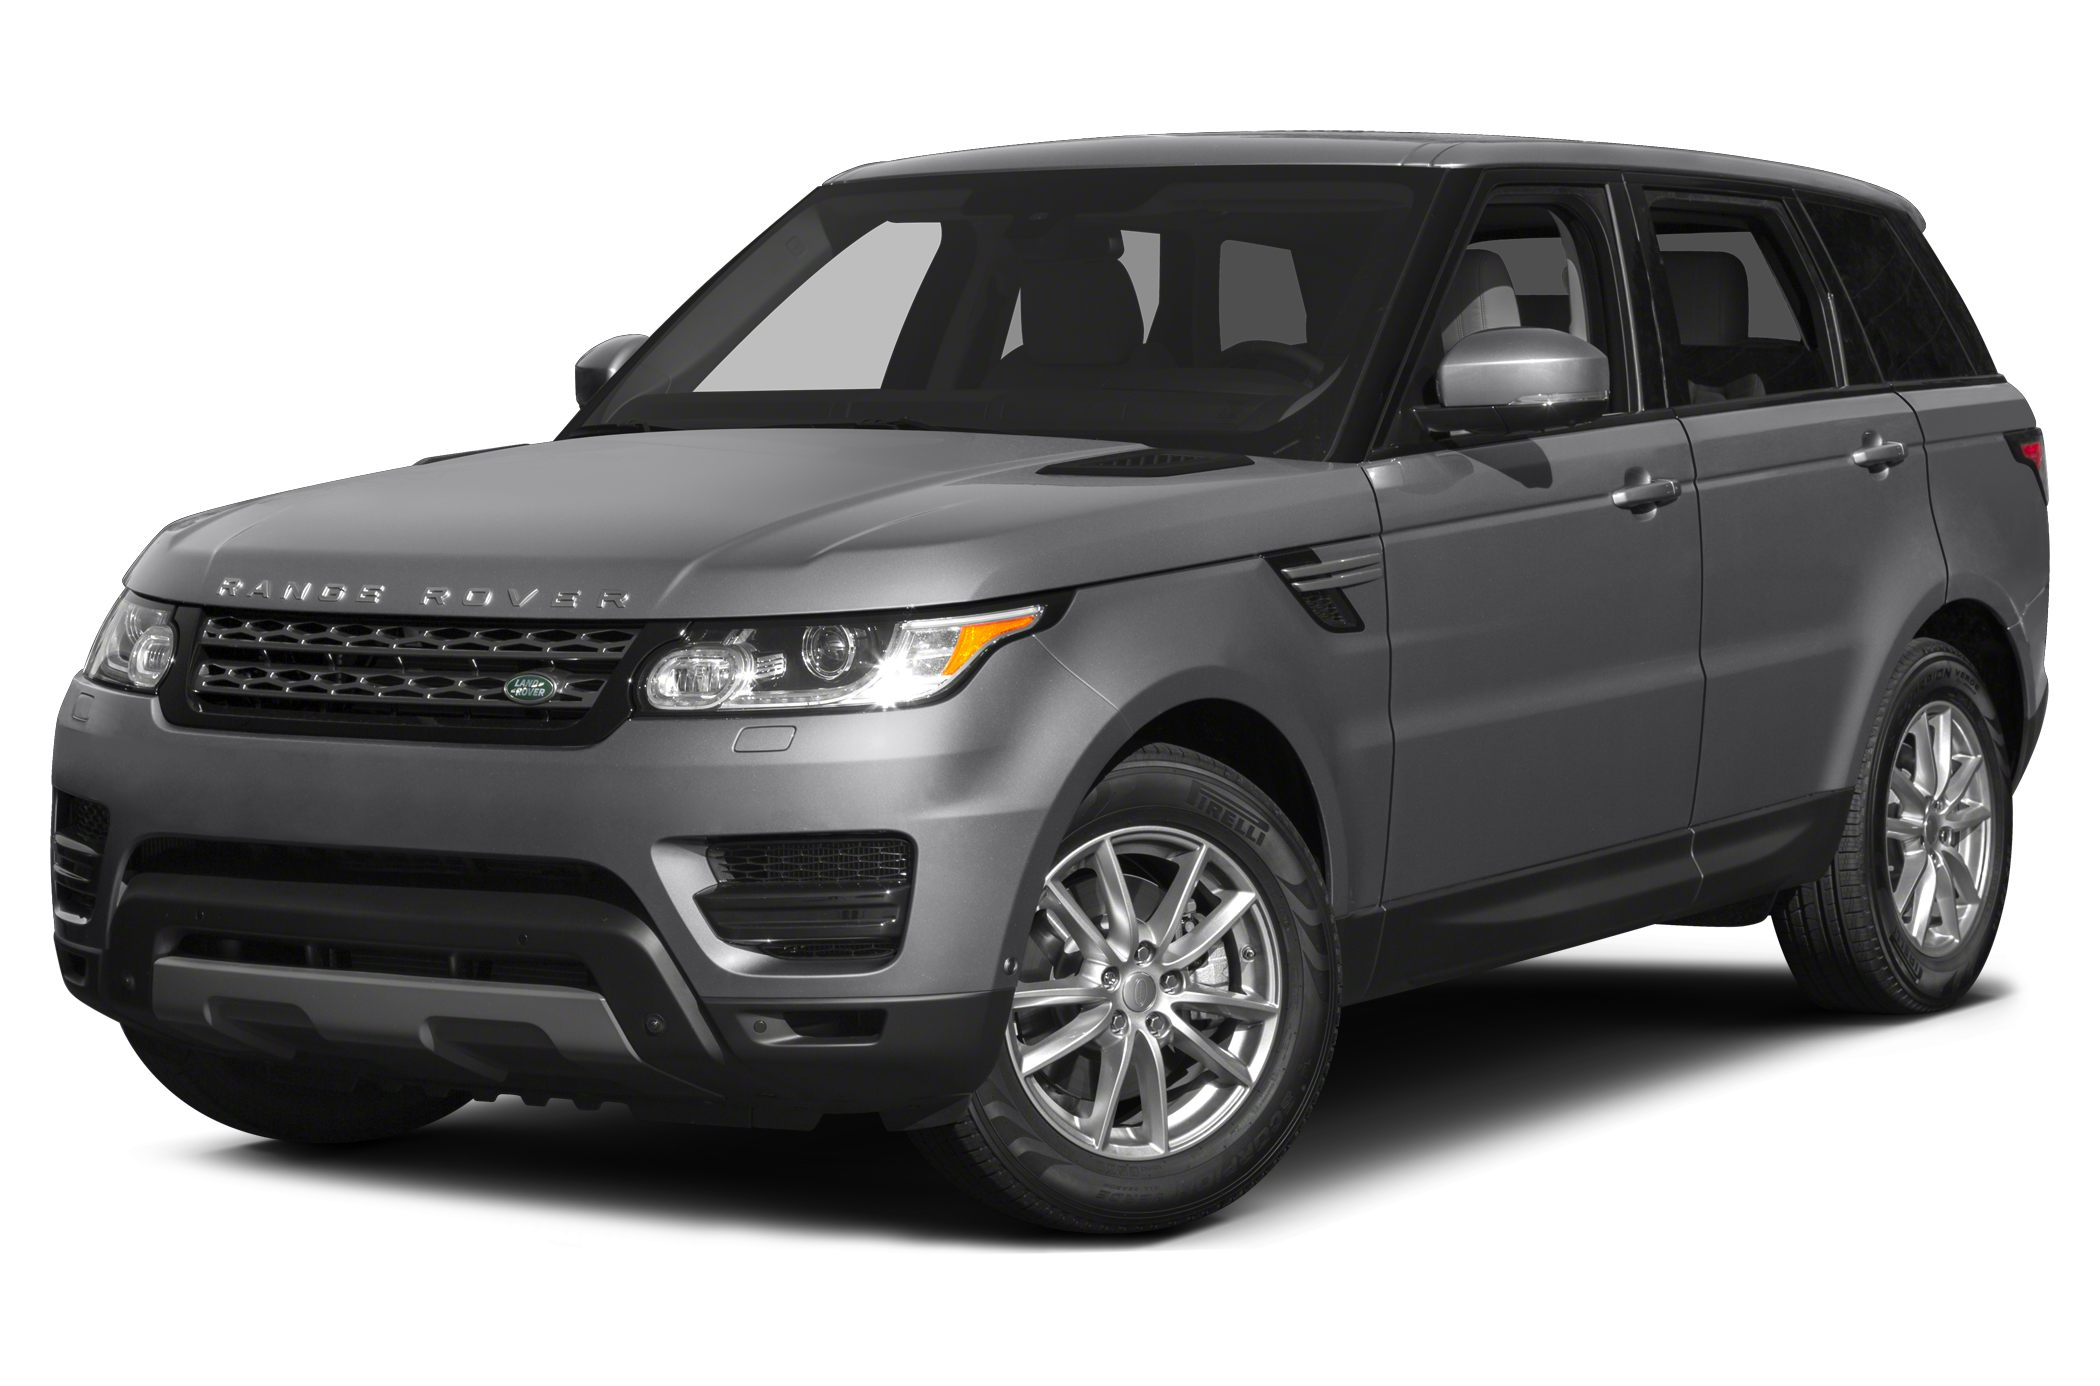 2015 range rover sport svr unleashed with 550 hp for 110 475 w video. Black Bedroom Furniture Sets. Home Design Ideas